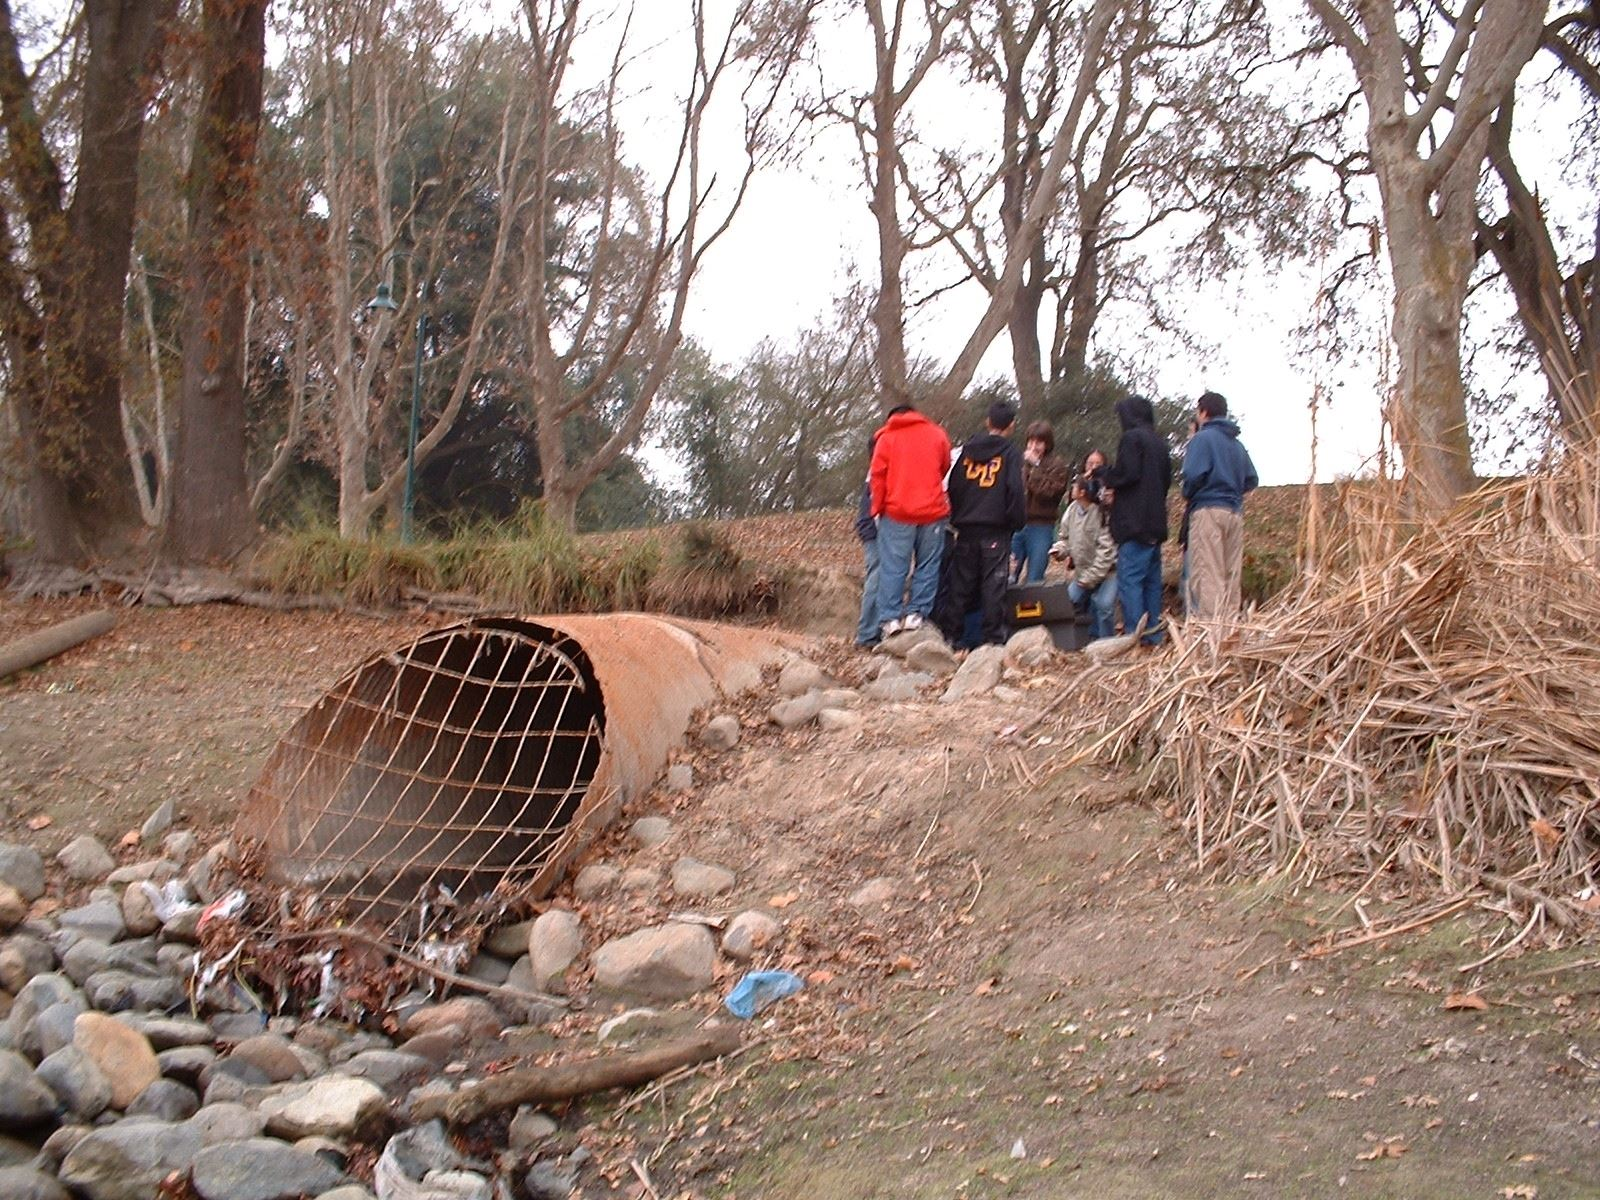 Group by large storm drain